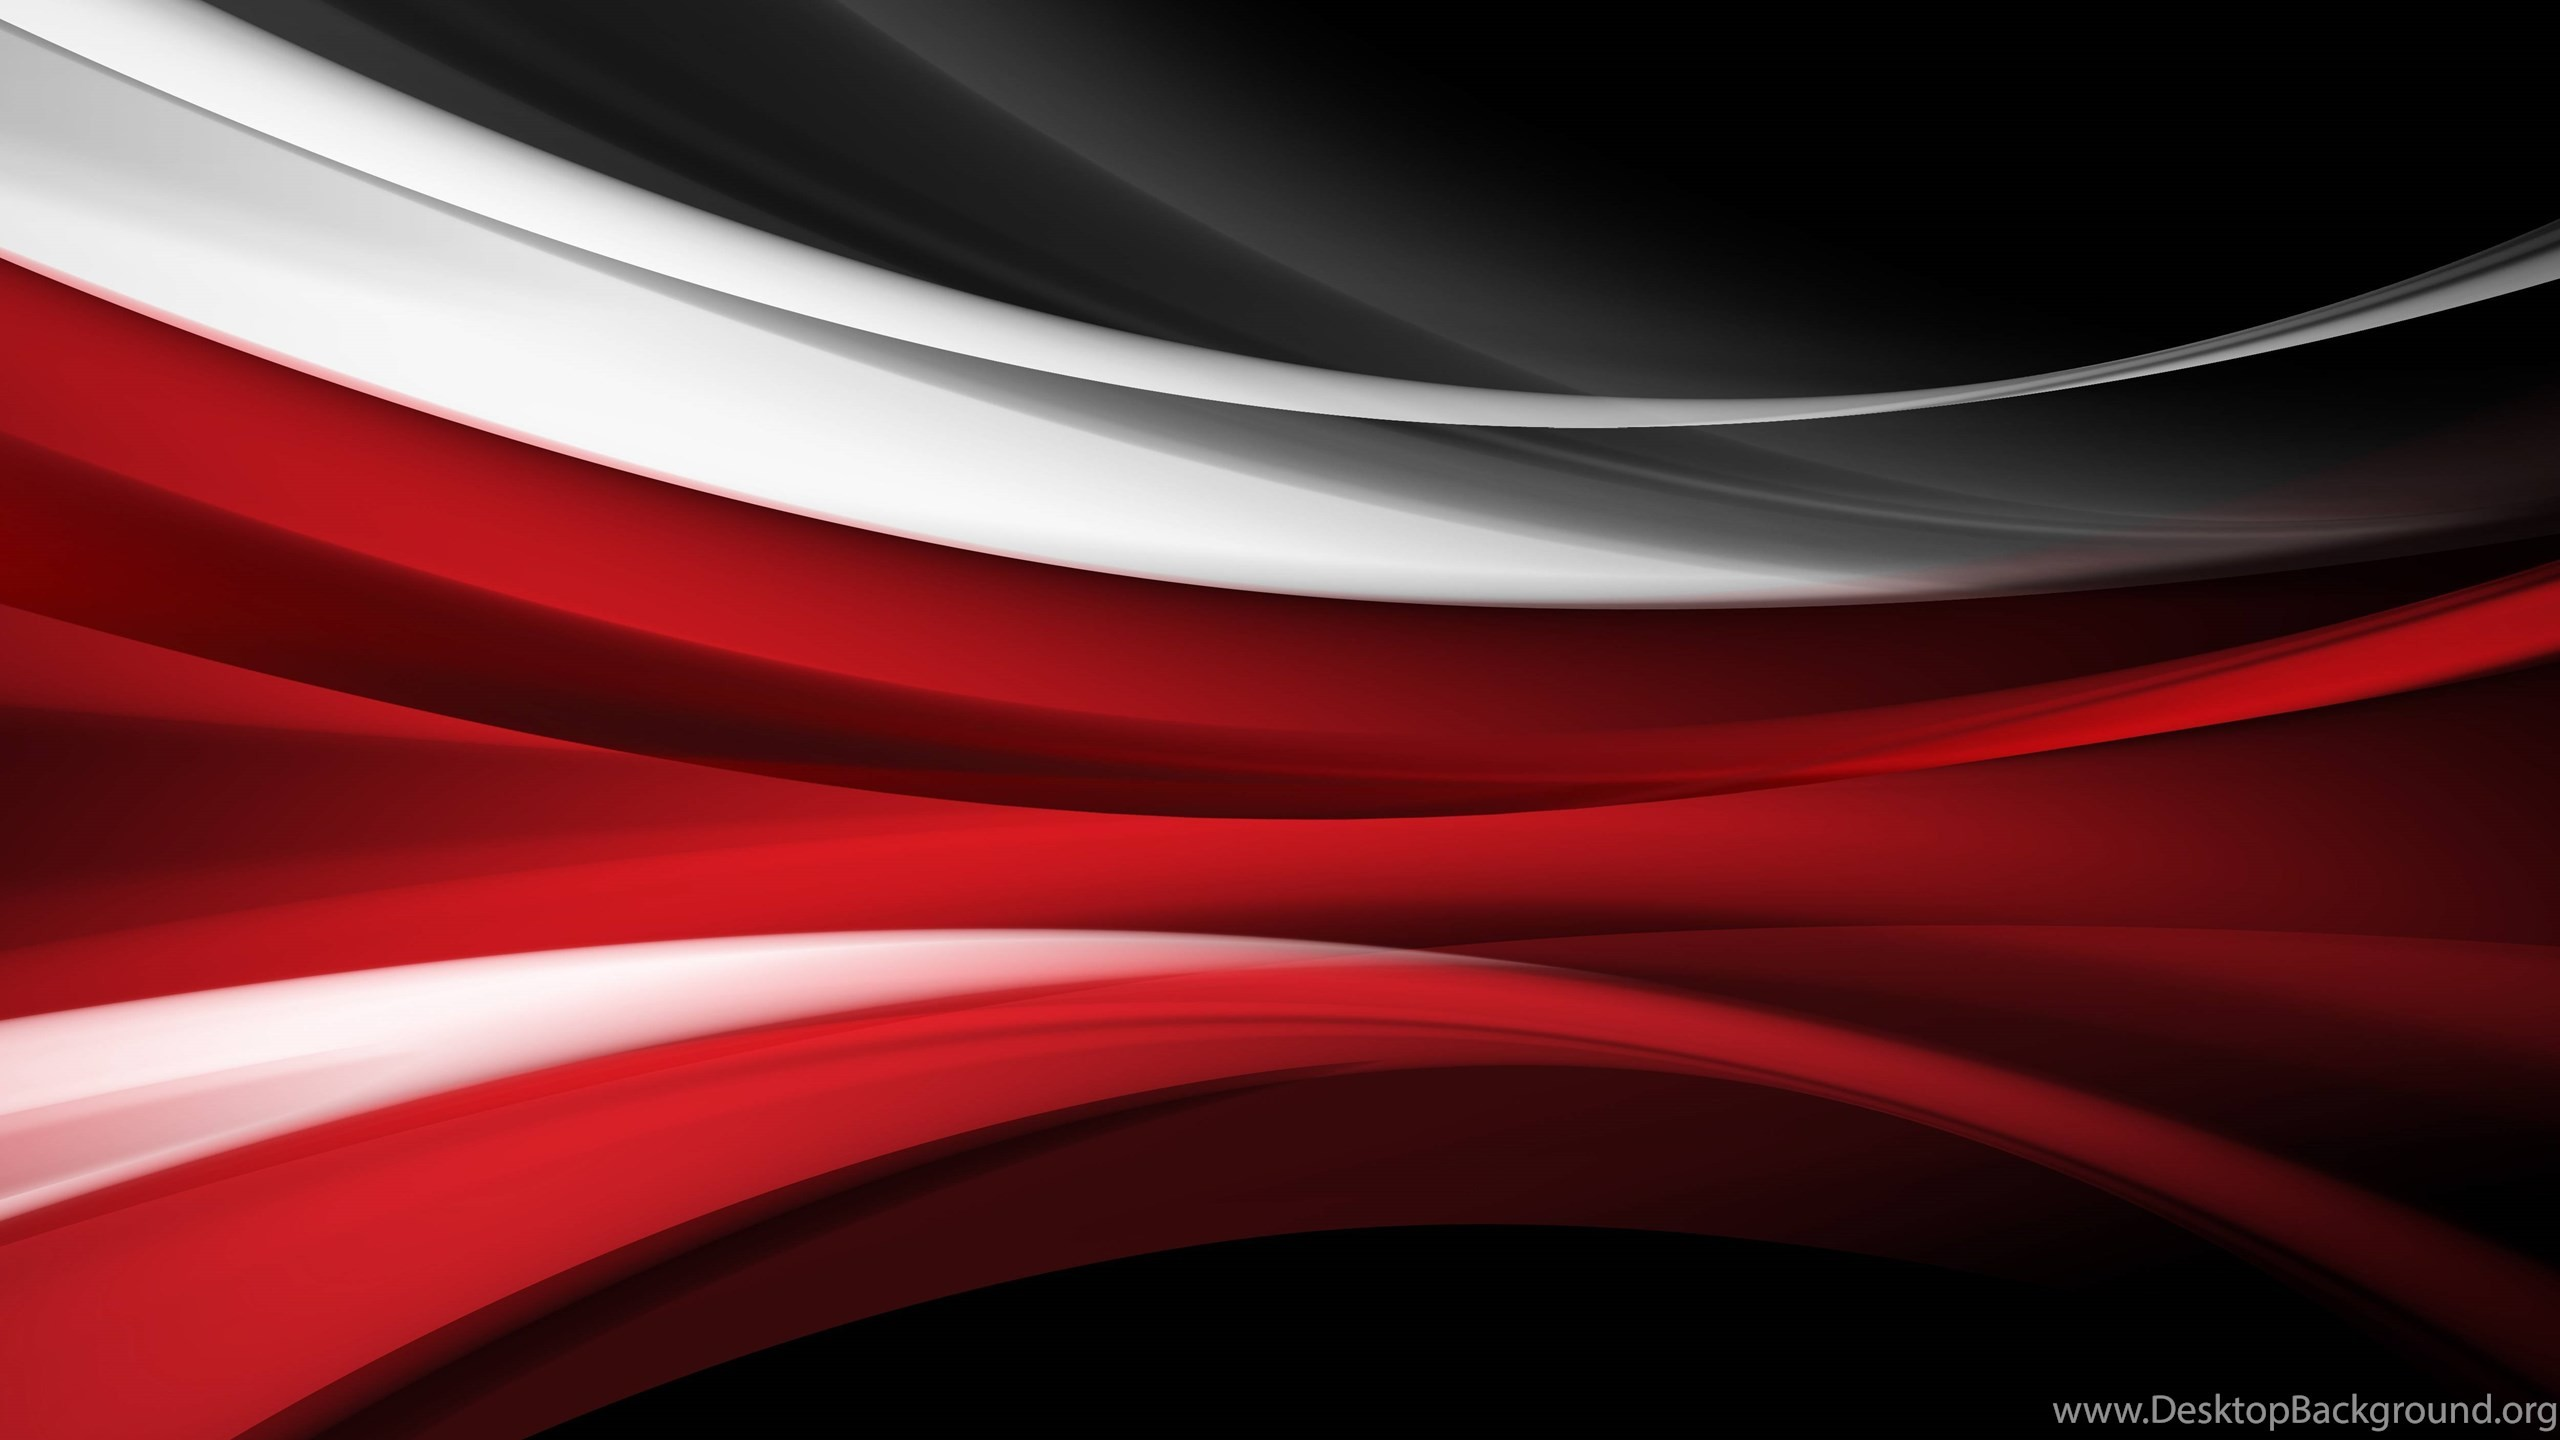 Red and Black Abstract Backgrounds (62+ pictures)